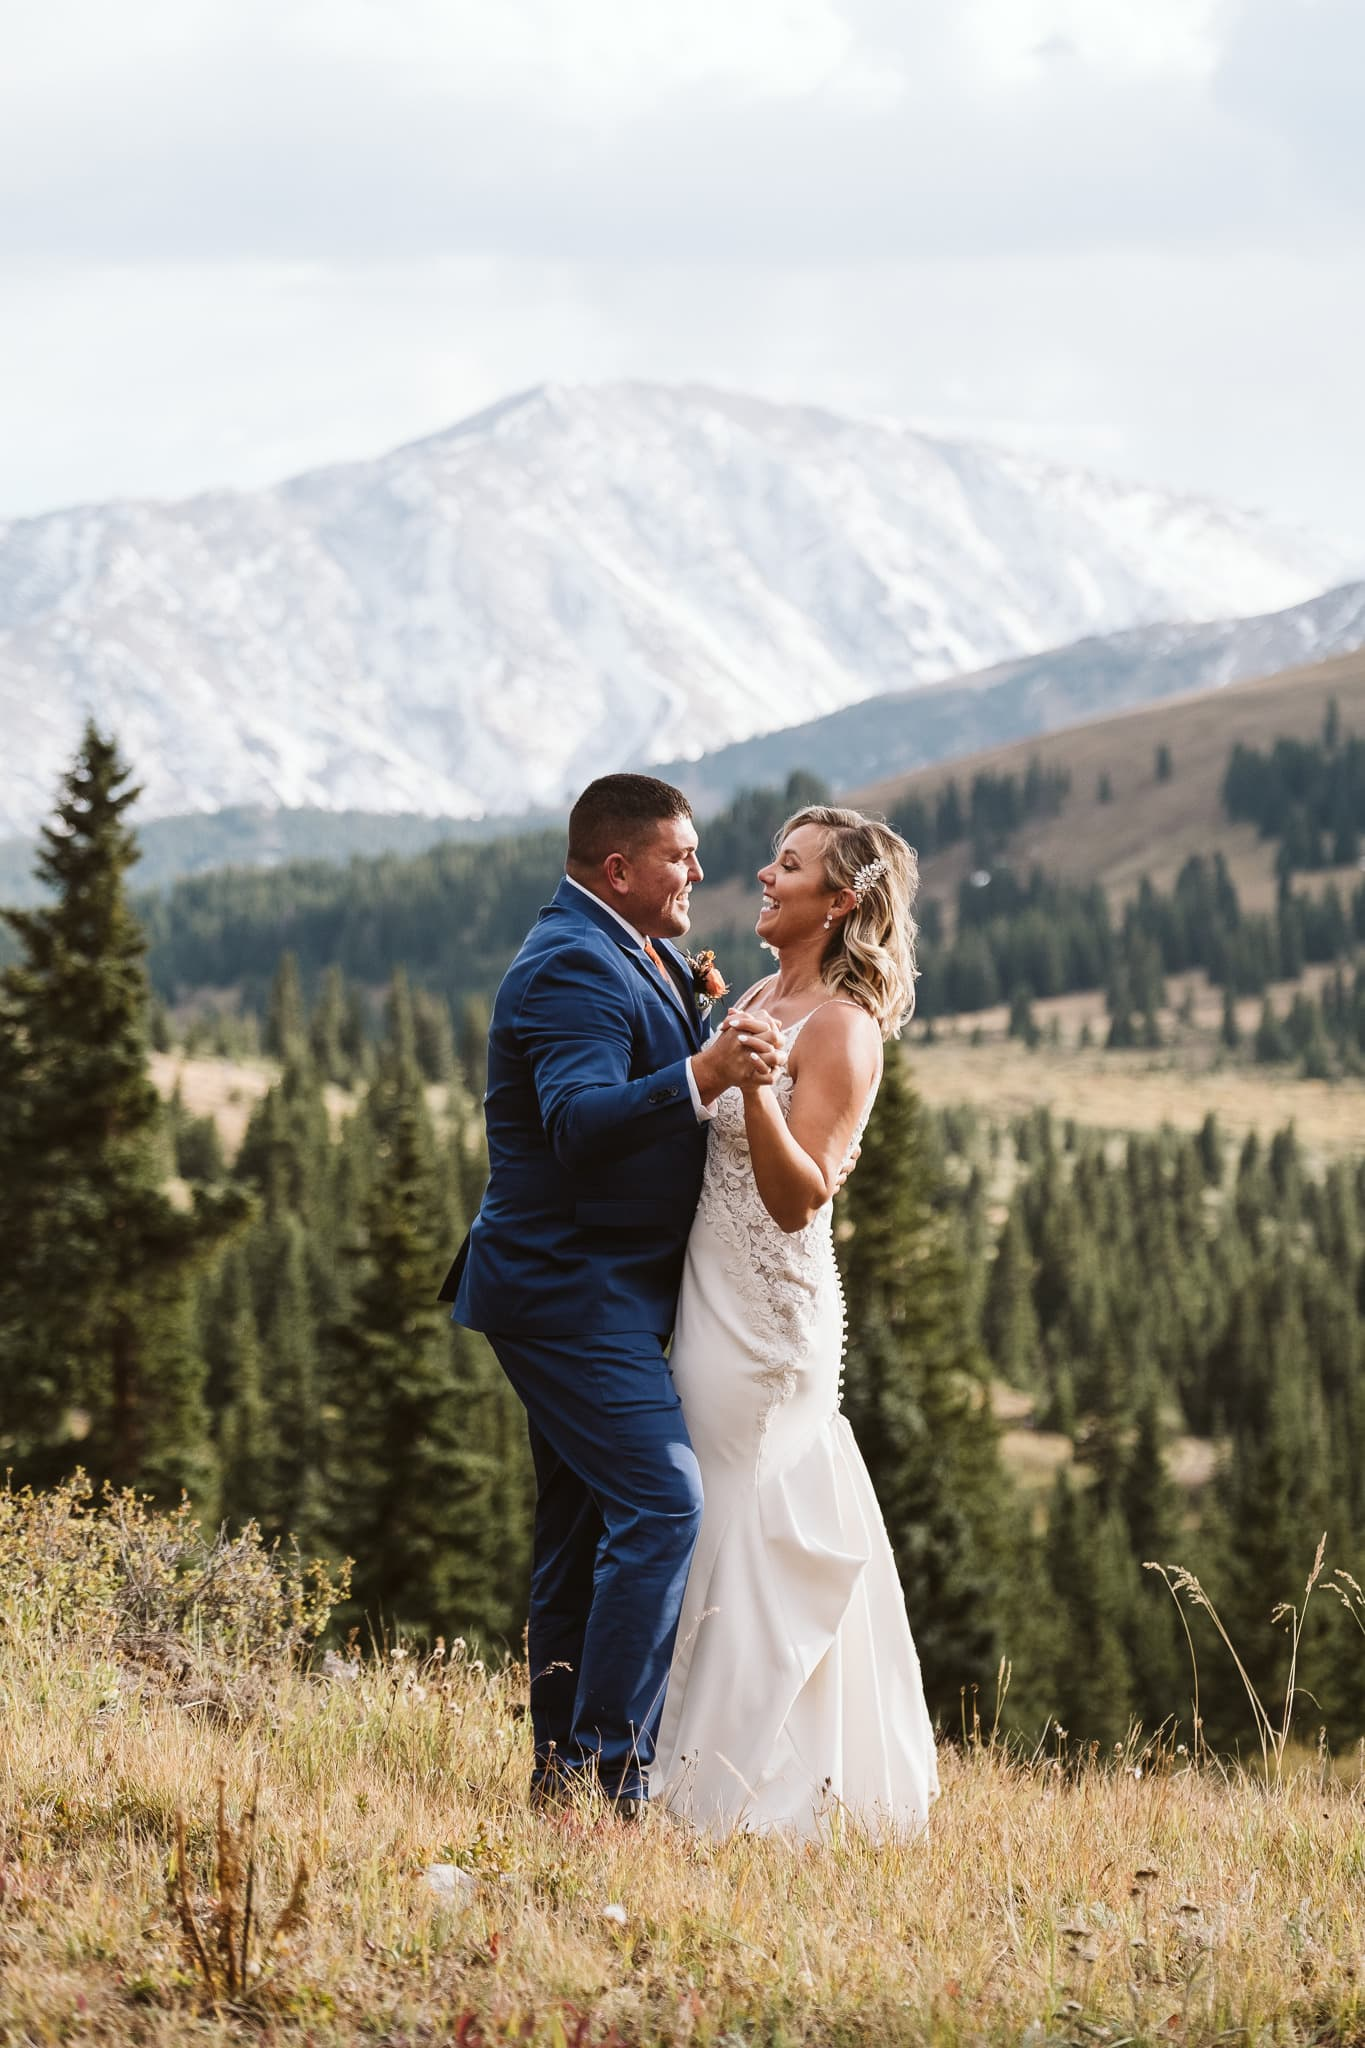 Bride and groom first dance in the mountains of Breckenridge